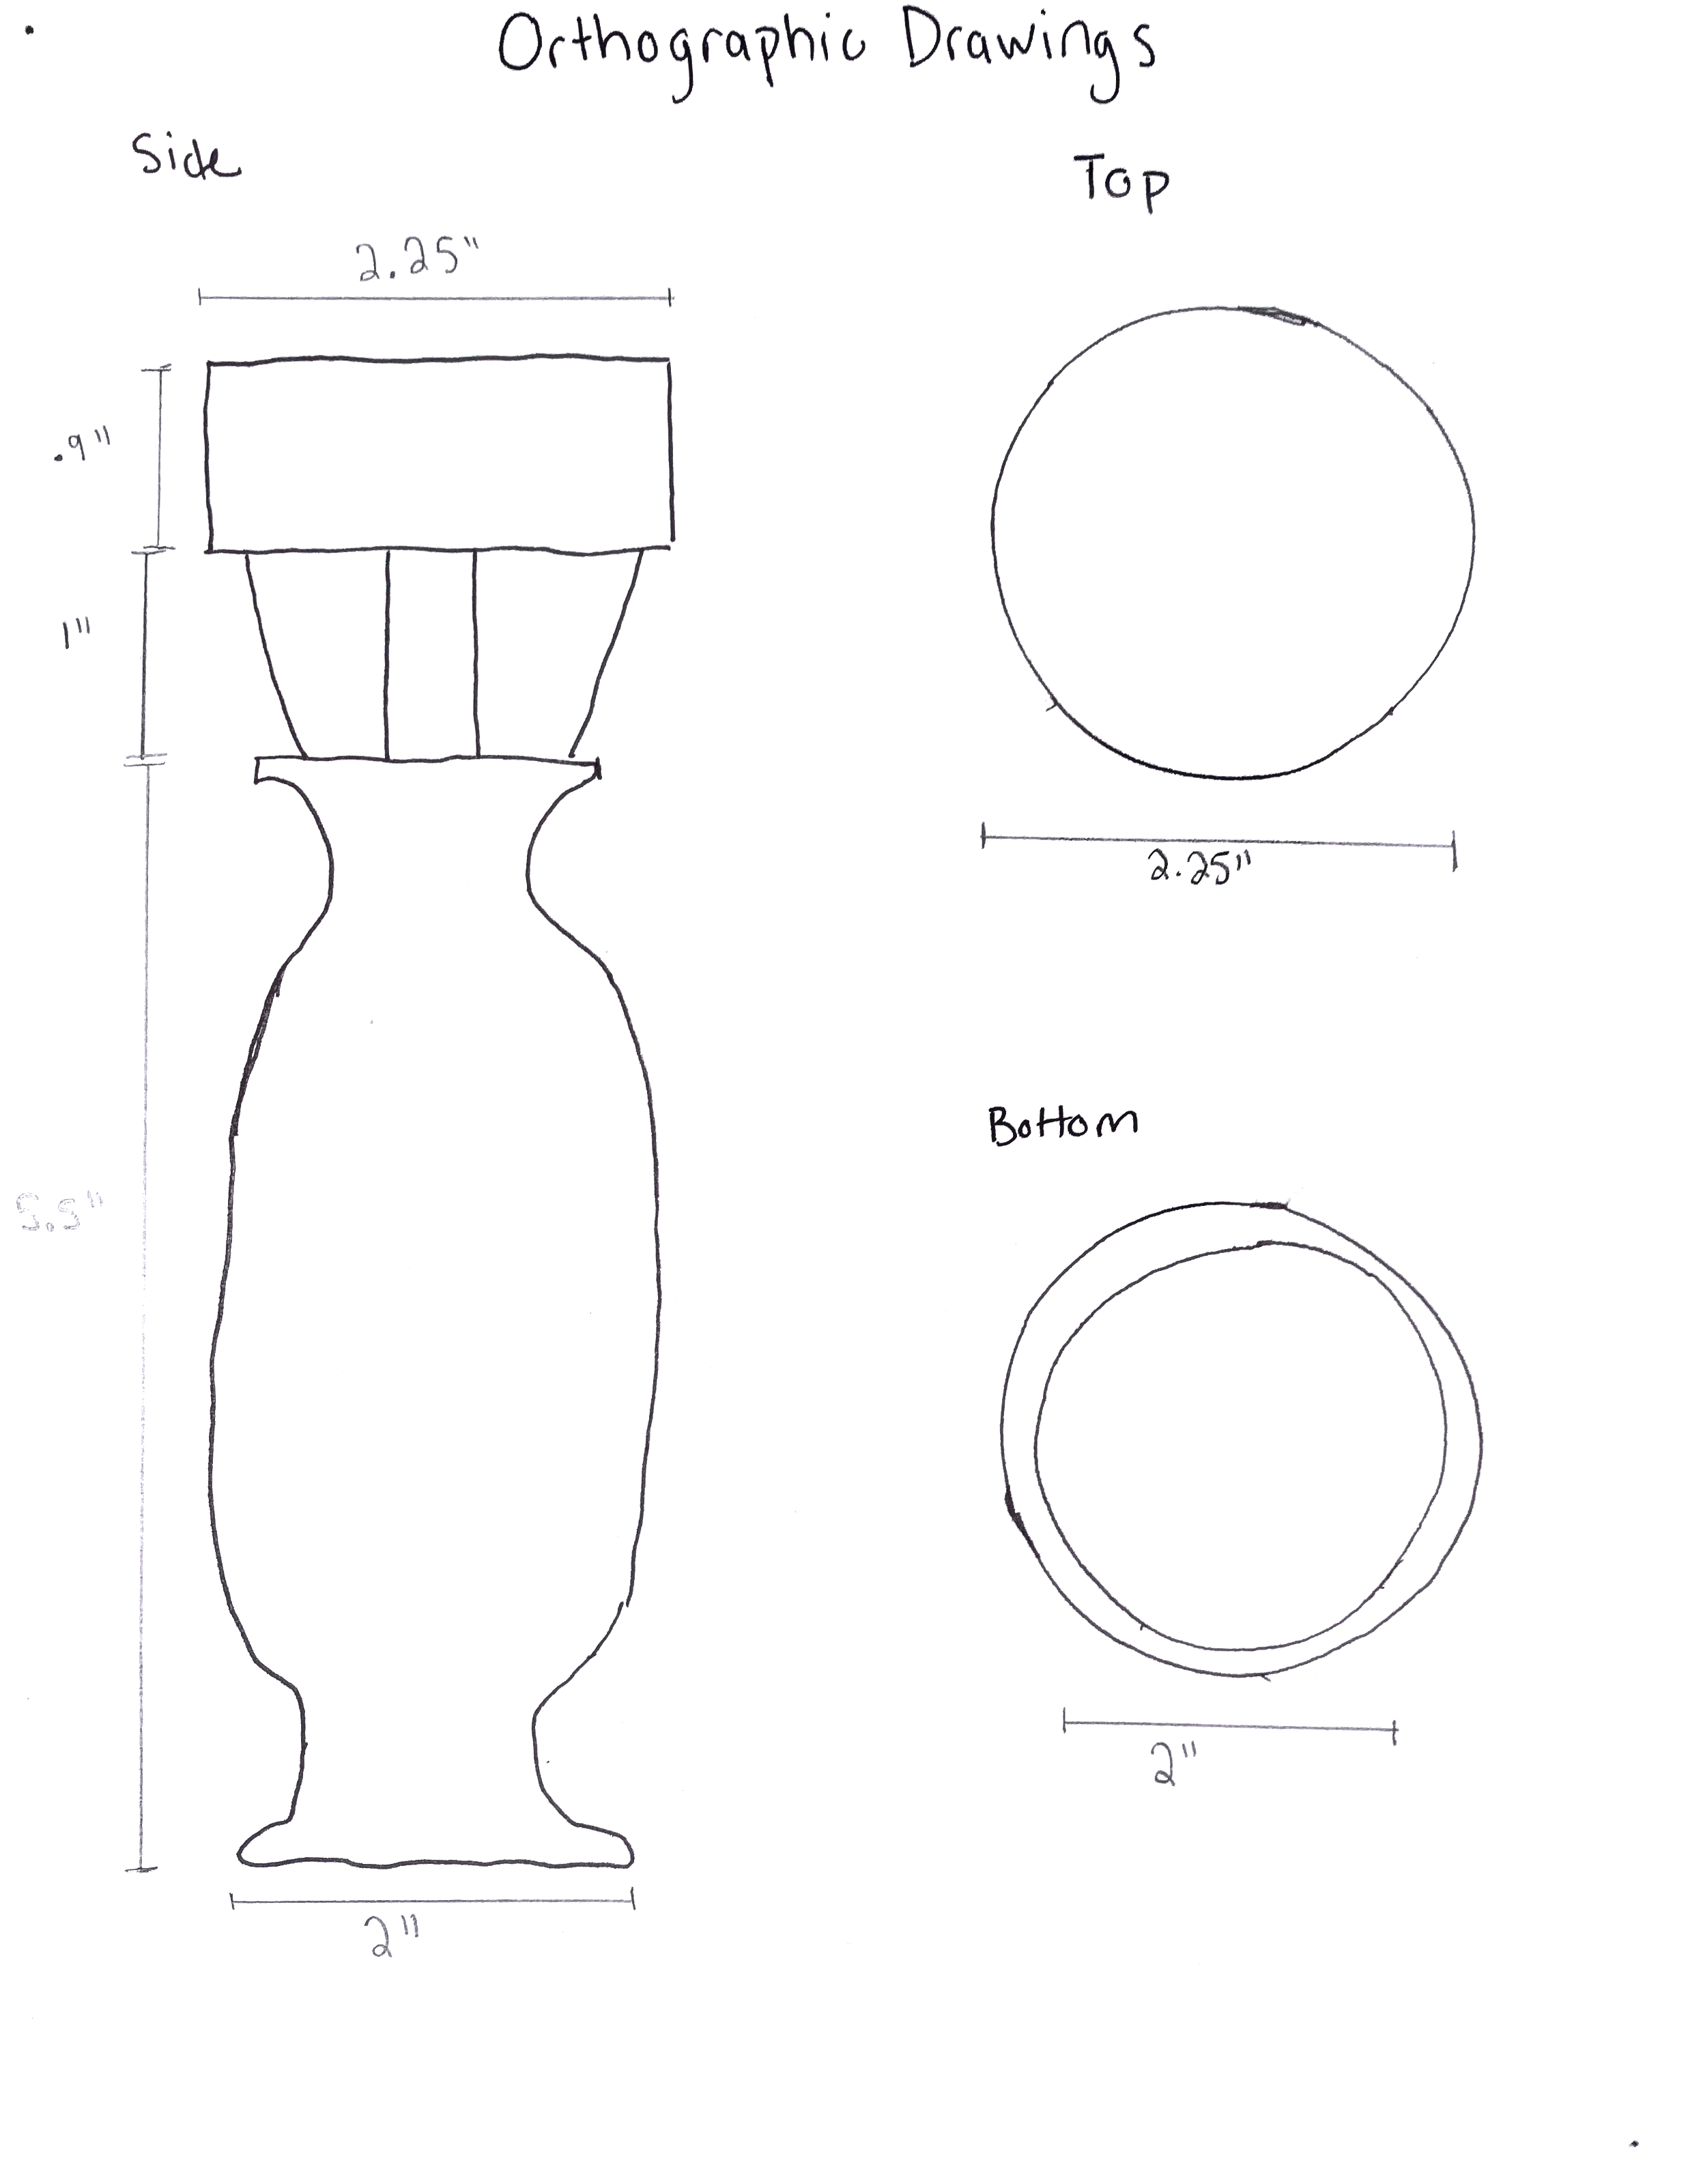 Orthographic drawing with to scale dimensions.